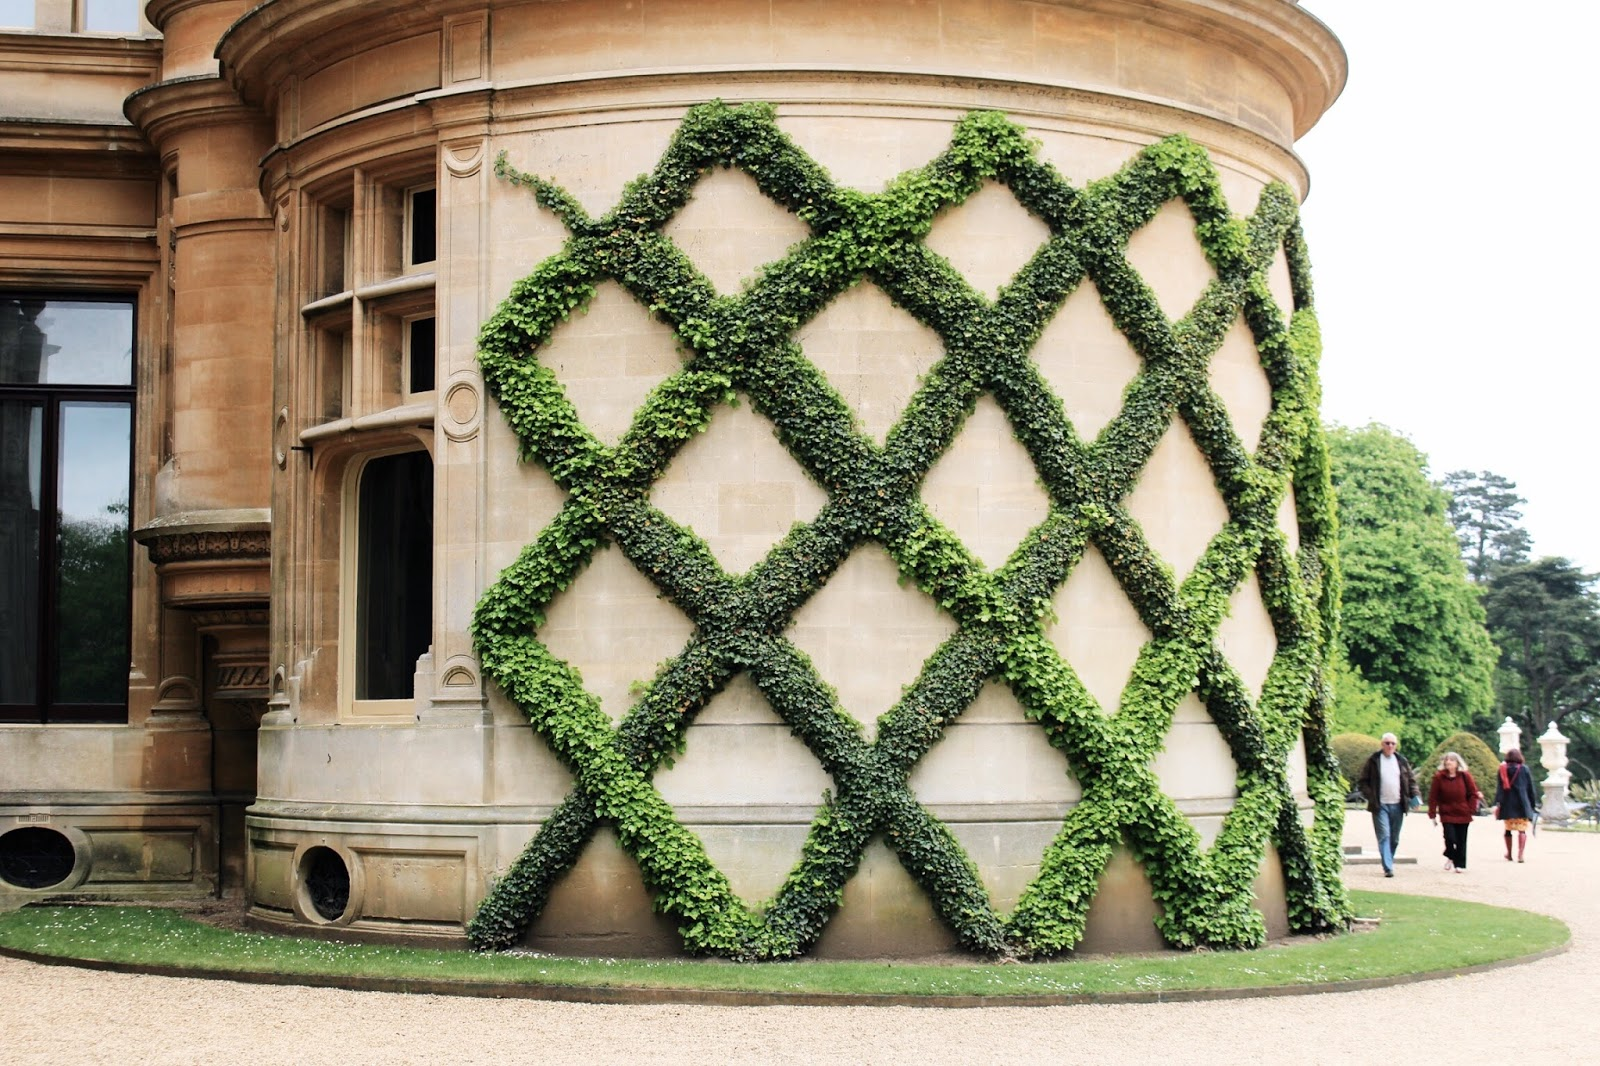 Lattice Greenery Climbing Up Manor Building